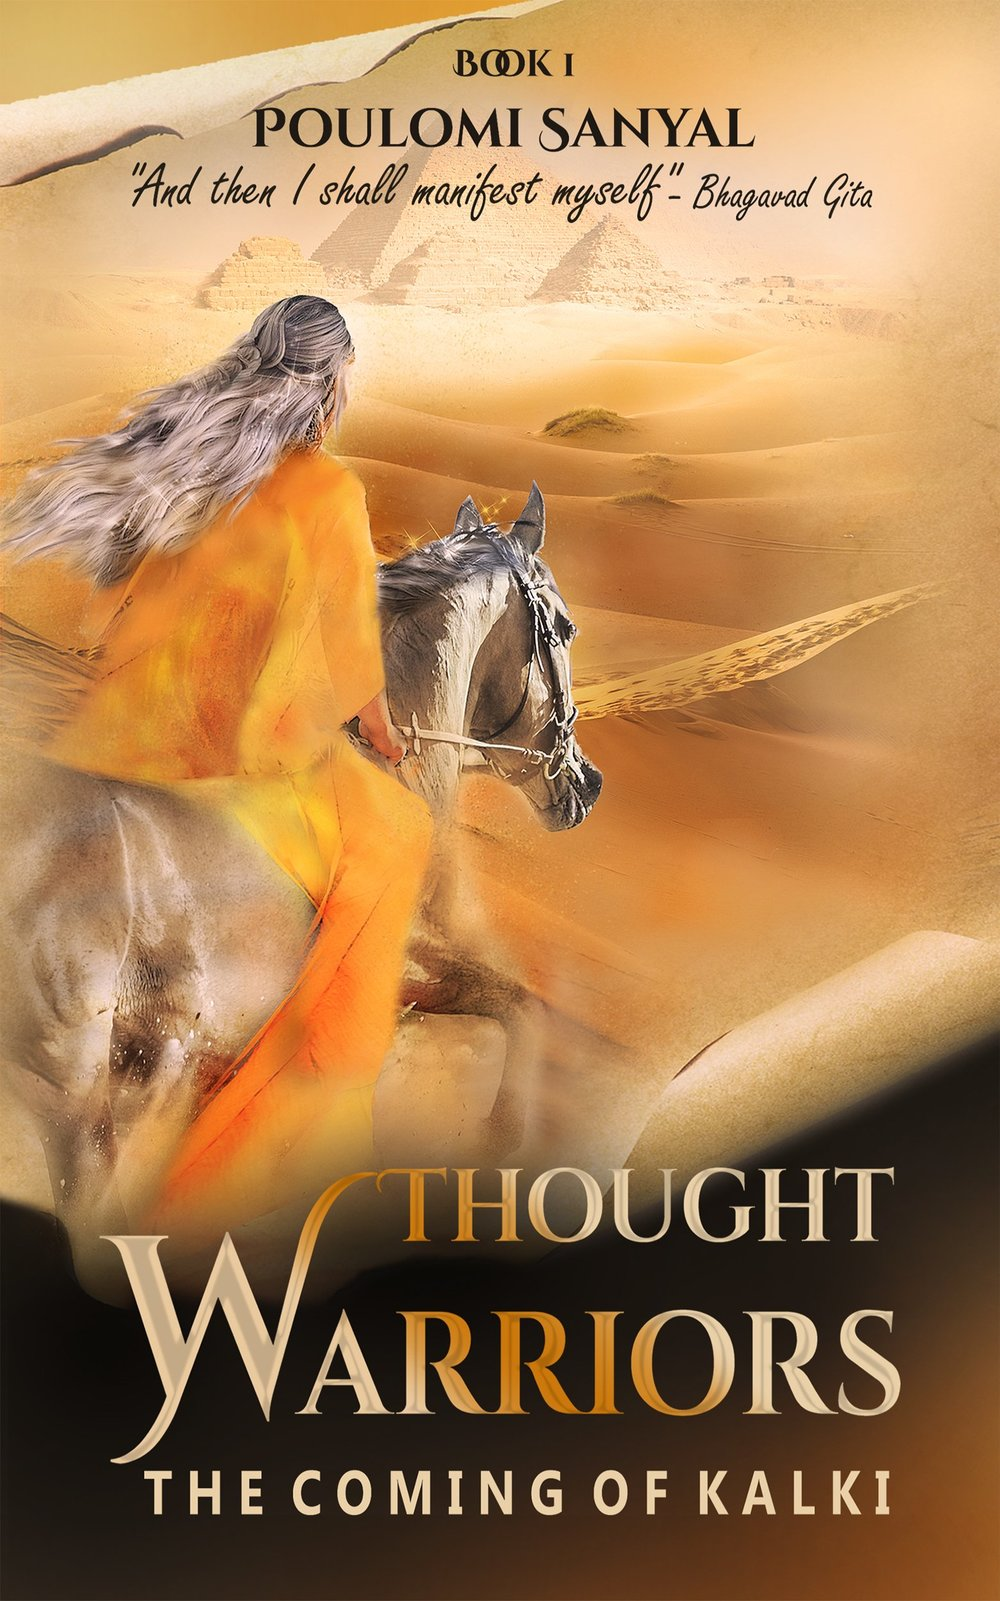 thought warriors: the coming of kalki - Written by Poulomi SanyalReleases February 10, 2019